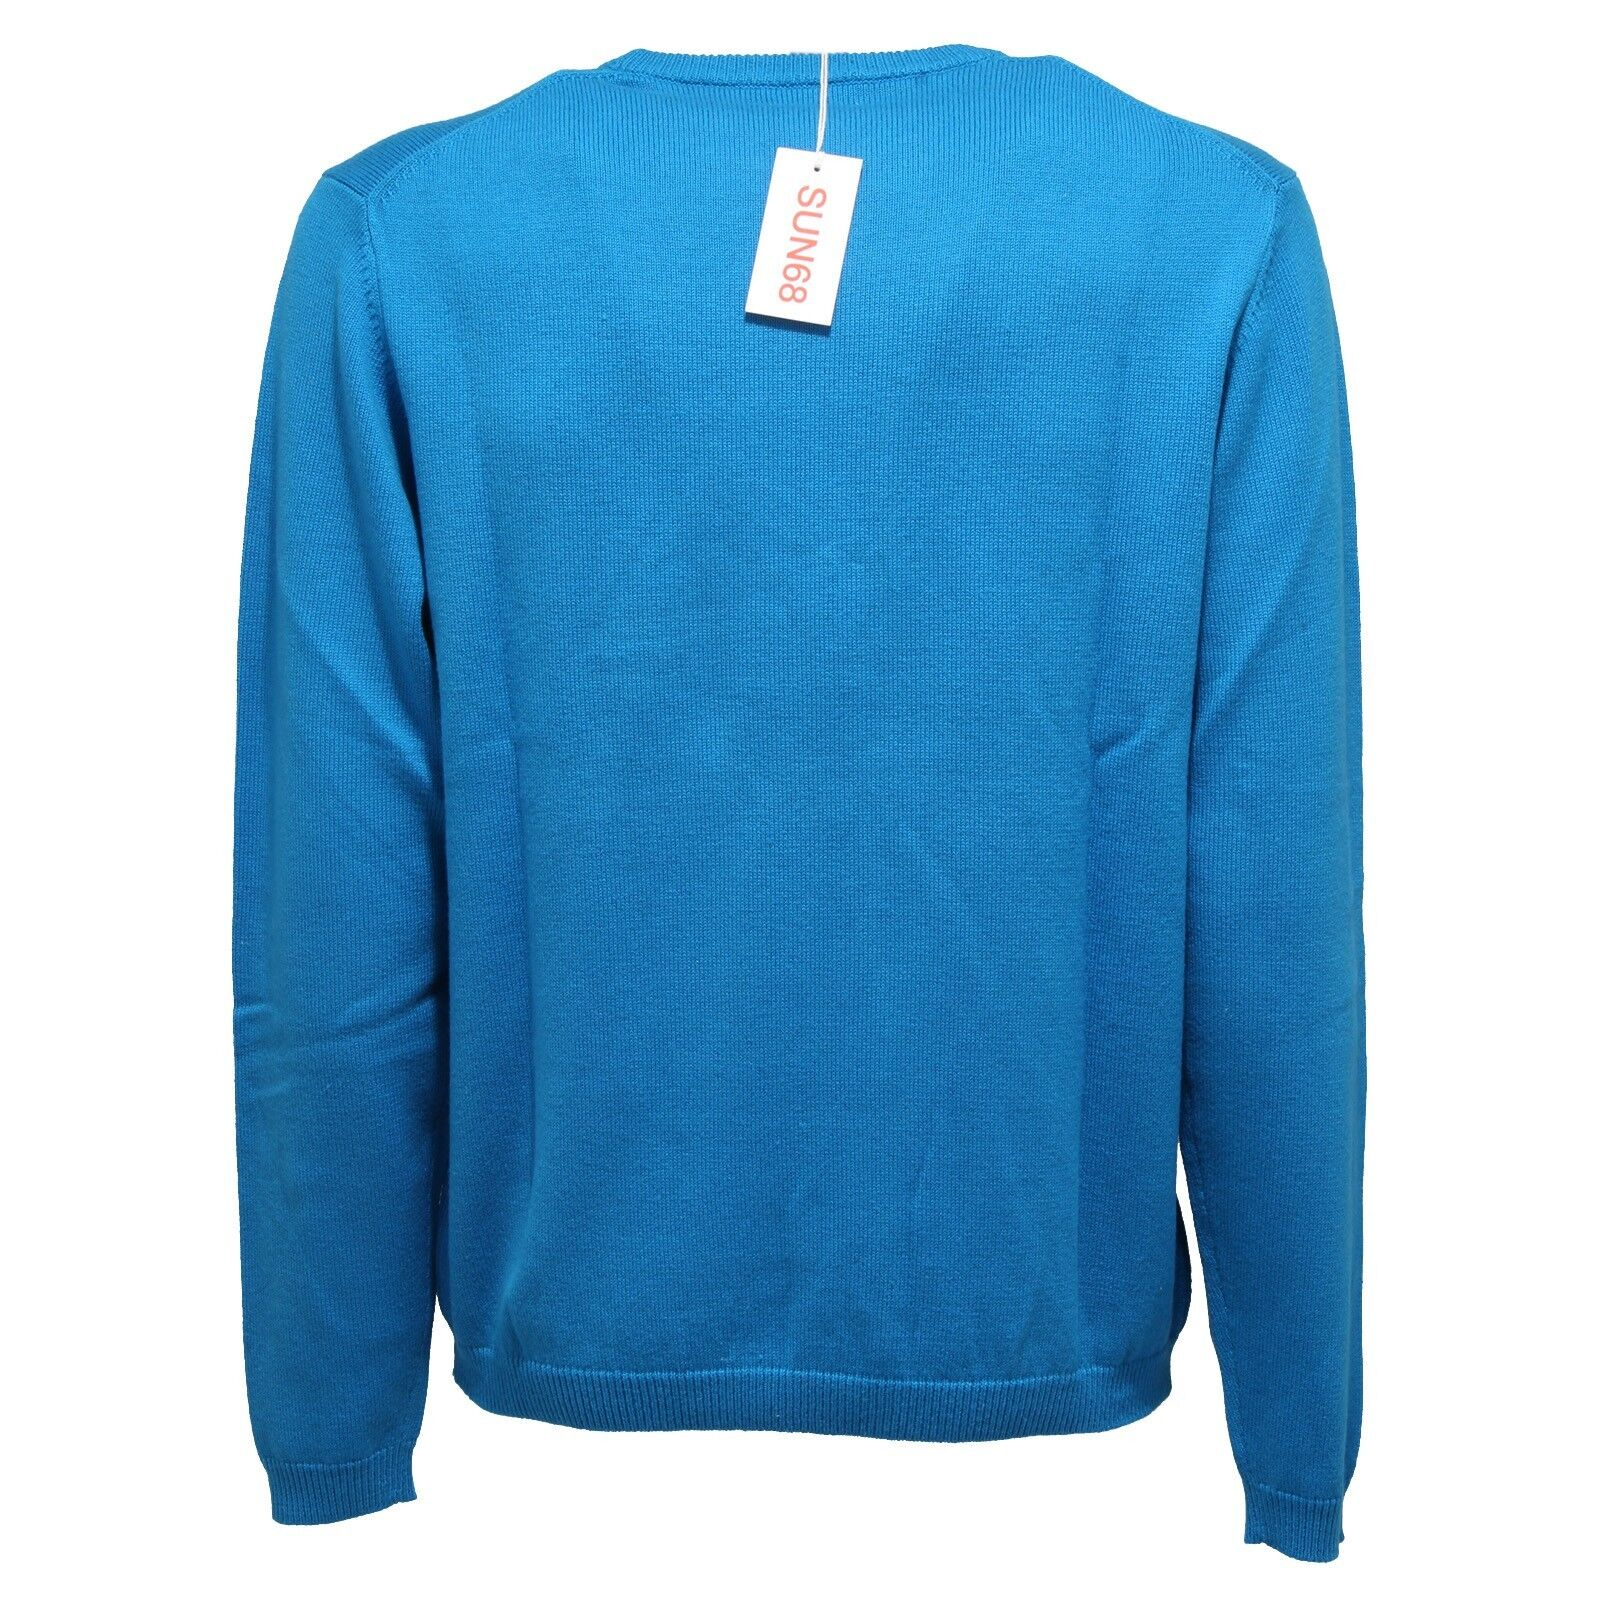 Maglione Frosso Perry Perry Perry 26102IT -40% 254260